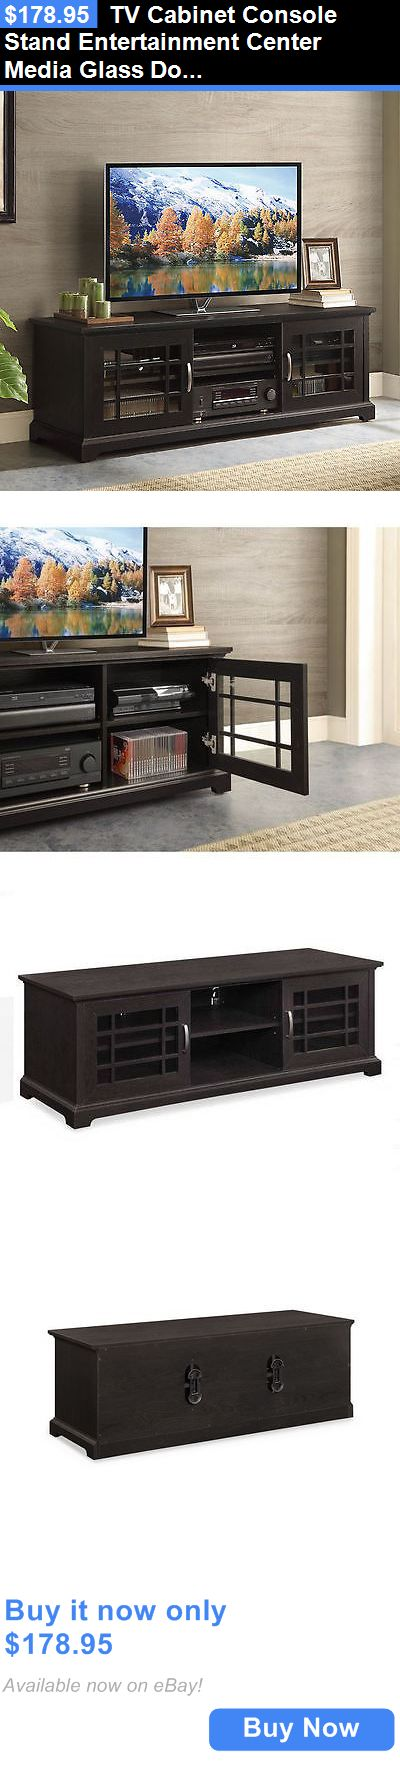 Entertainment Units TV Stands: Tv Cabinet Console Stand Entertainment Center Media Glass Doors 3 Shelves 70 BUY IT NOW ONLY: $178.95